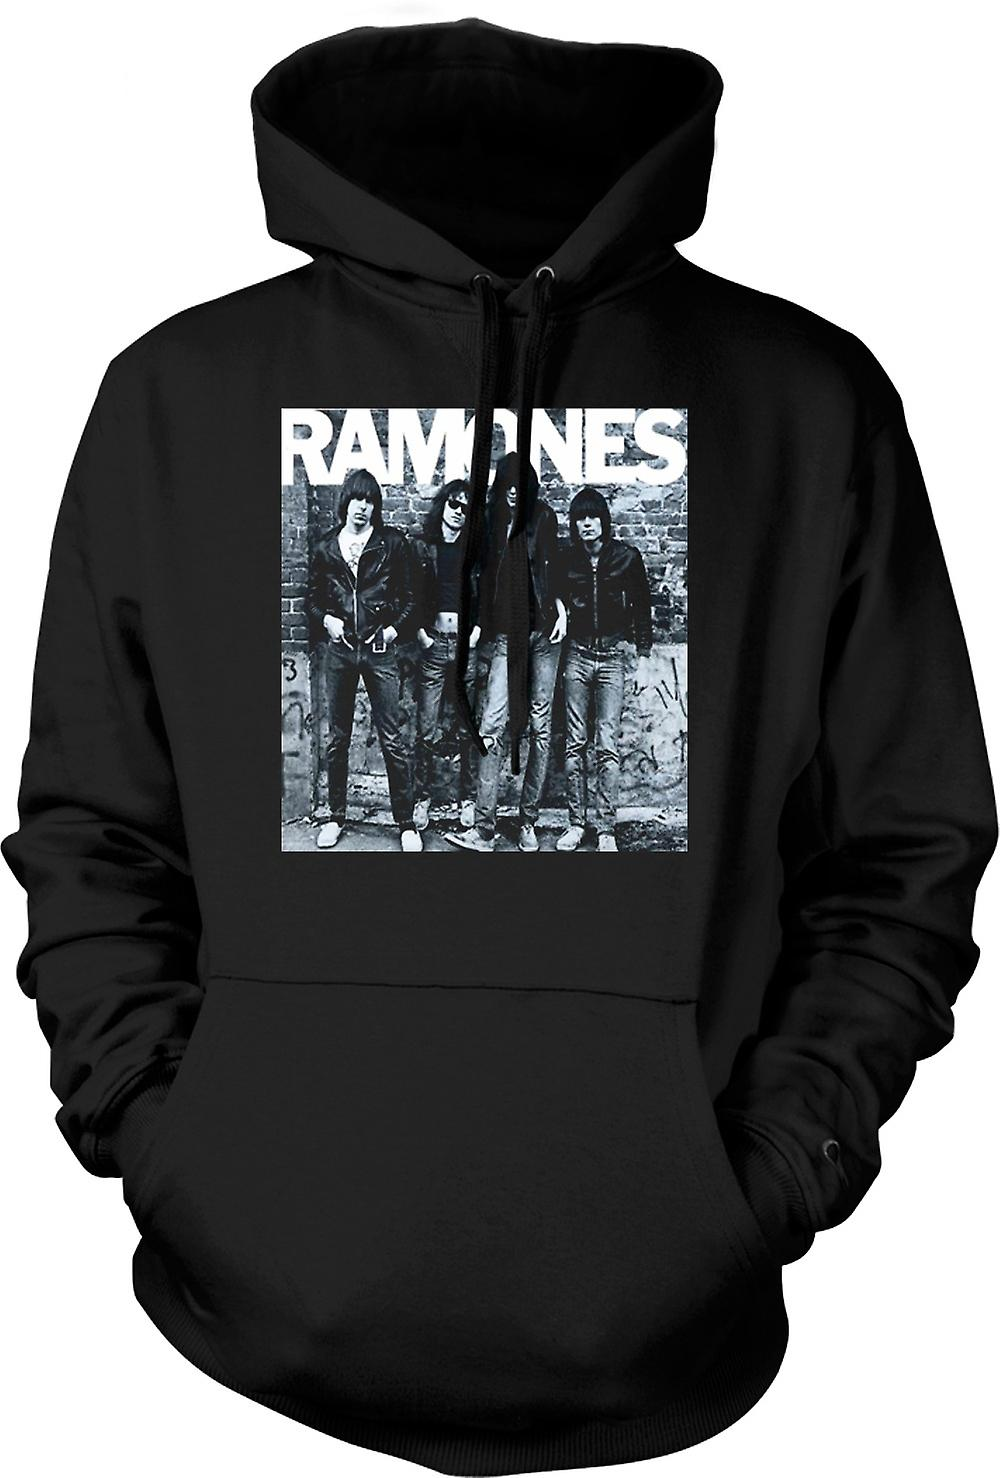 Mens Hoodie - Ramones - Punk Rock - Album Art